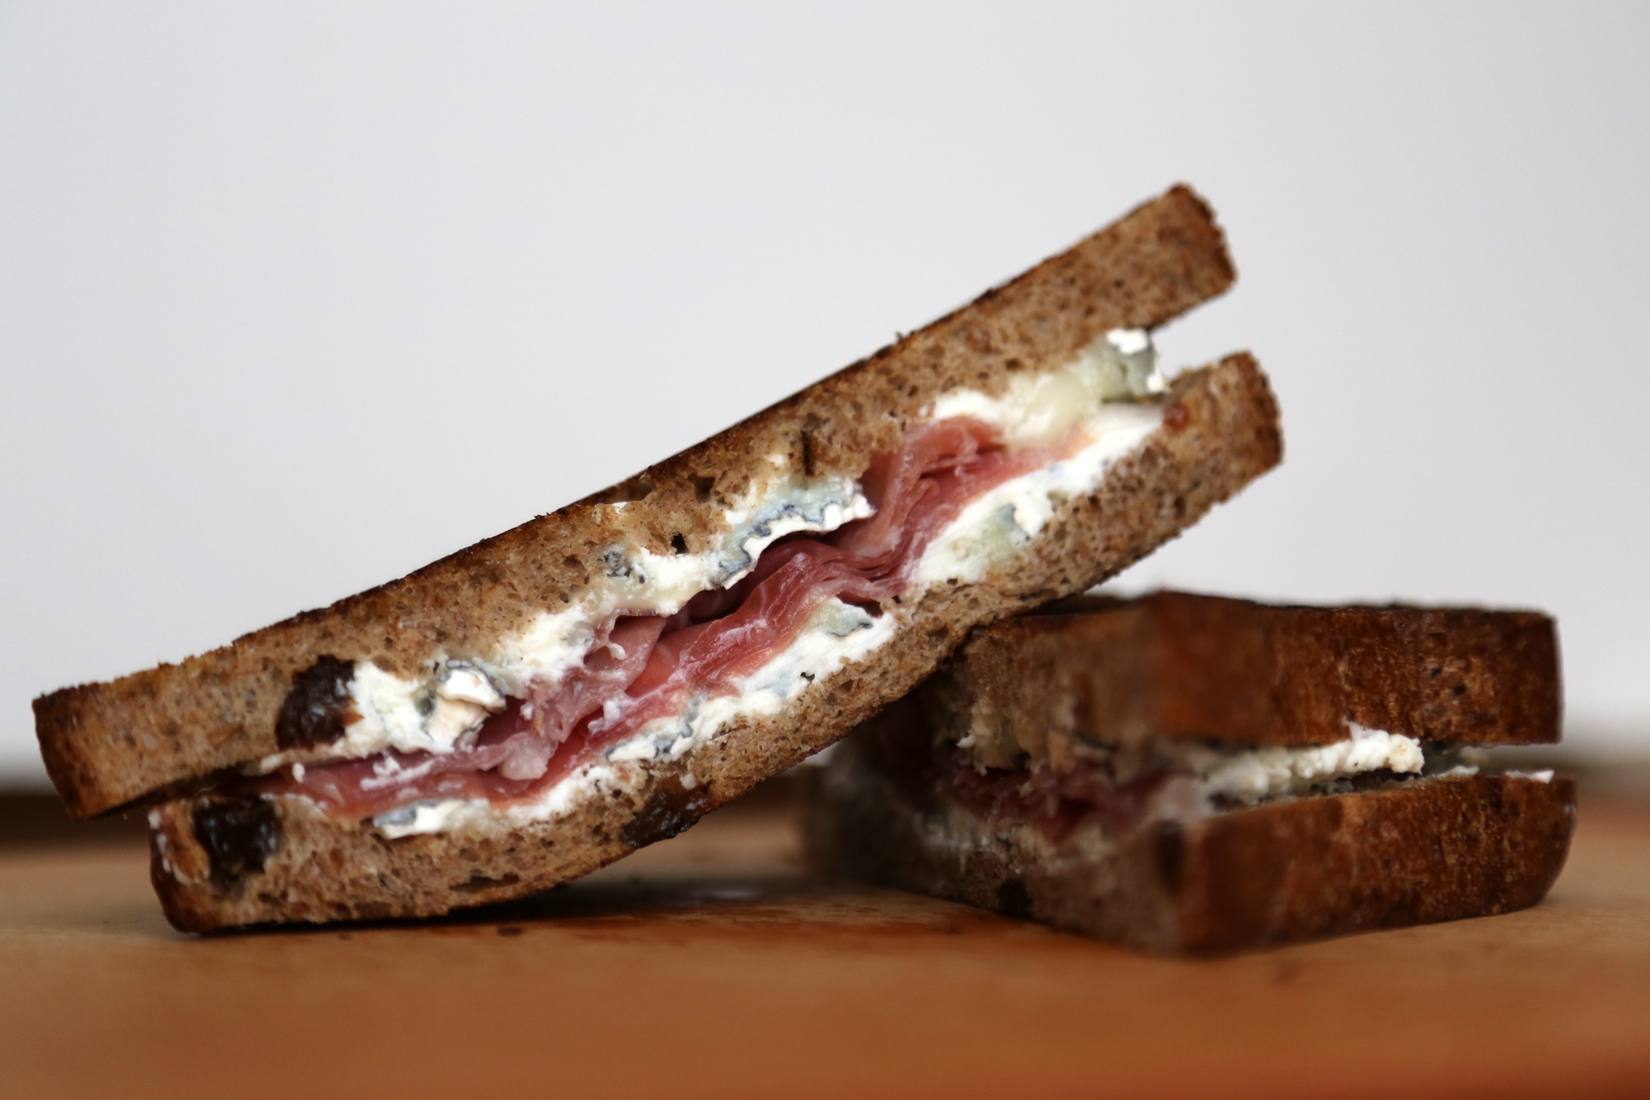 Humboldt Fog and Prosciutto Grilled Cheese